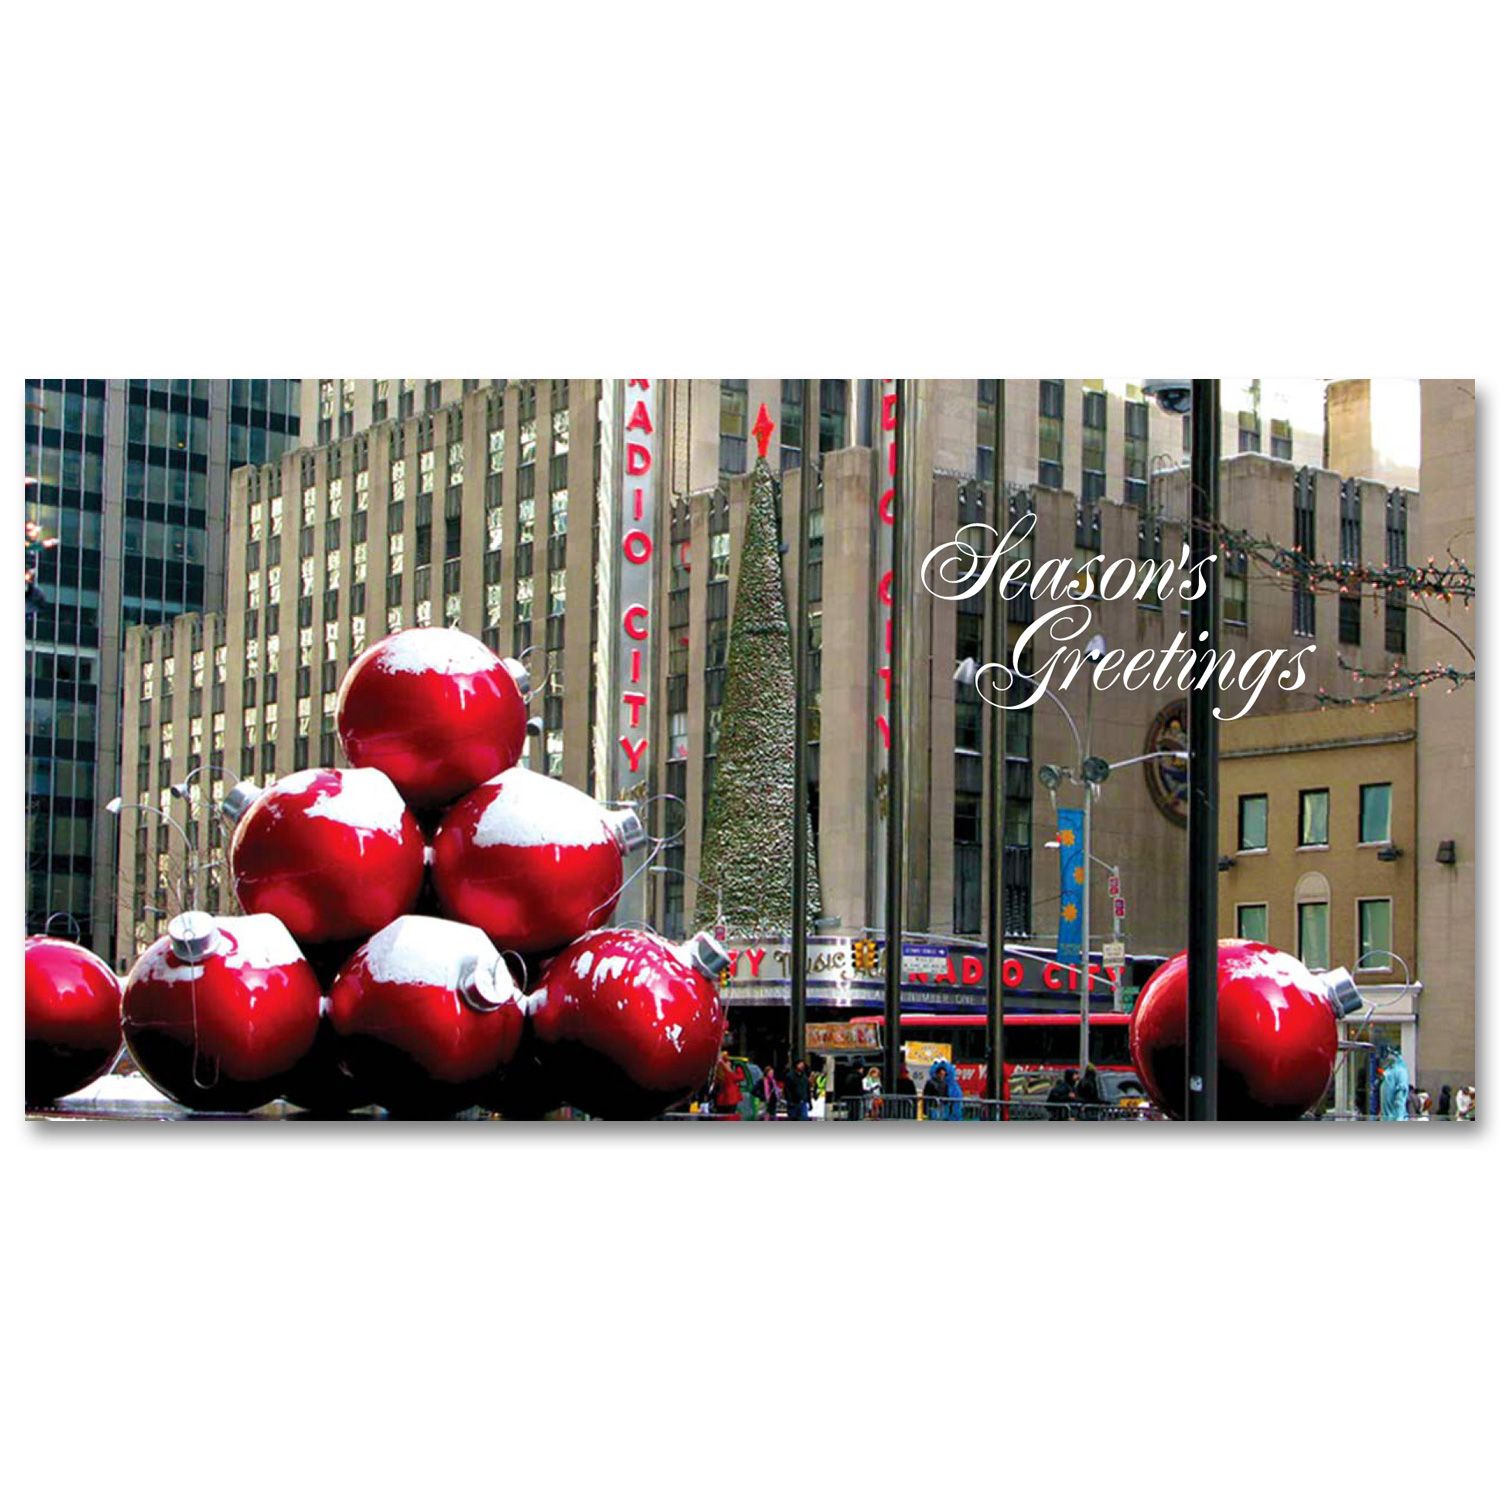 Christmas Decorations In Midtown Manhattan Holidays Money Greeting